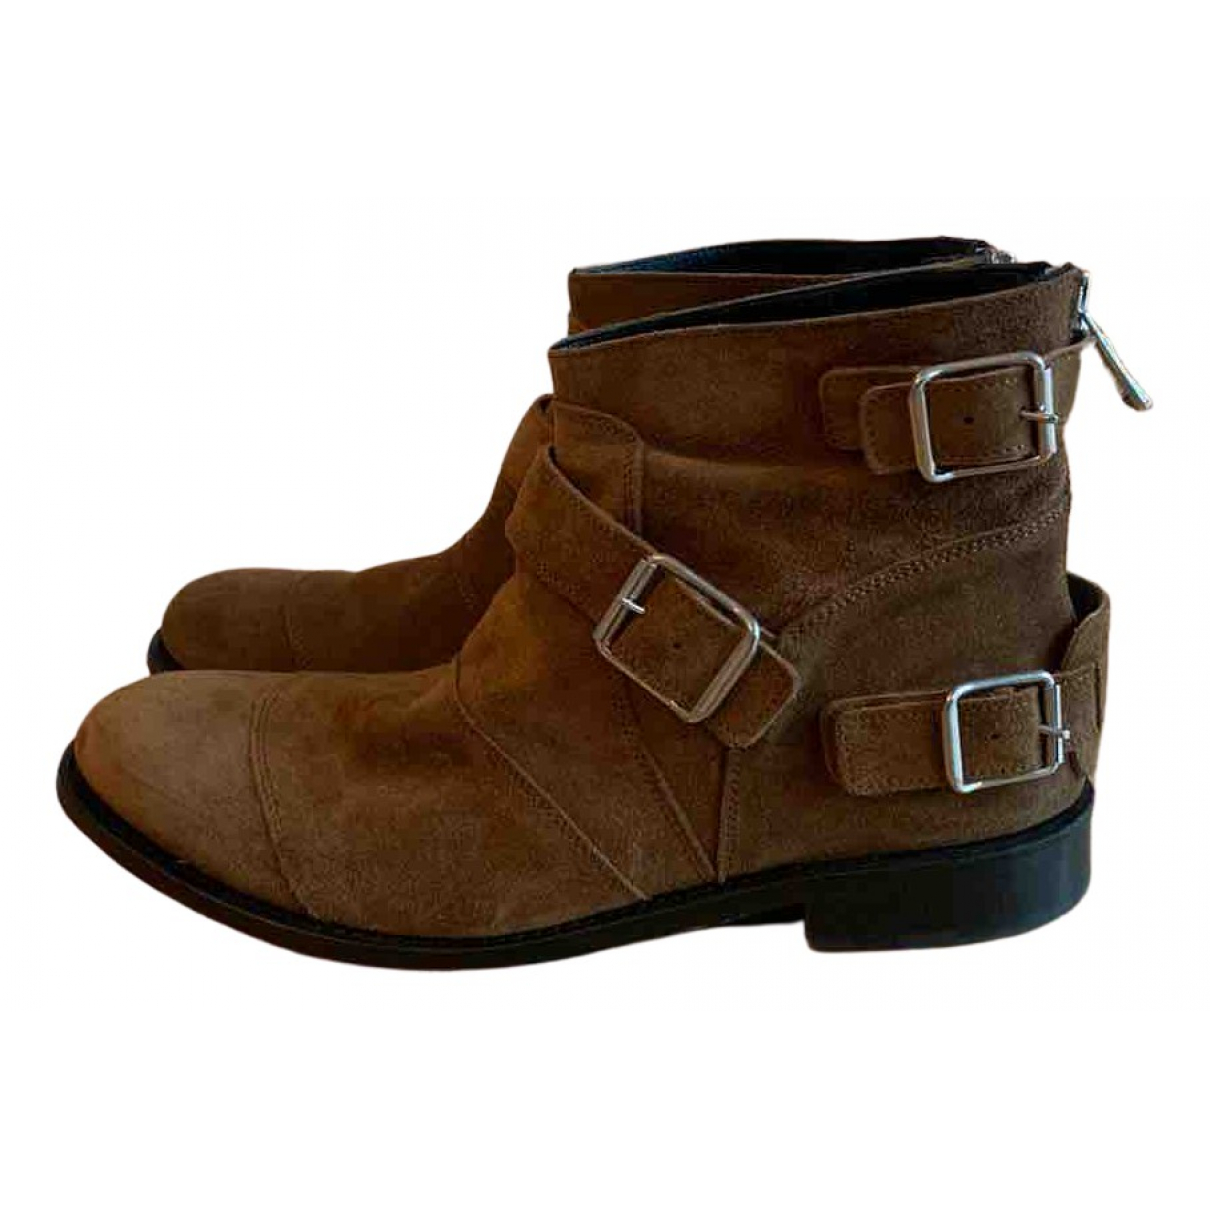 Balmain For H&m N Camel Suede Boots for Men 43 EU